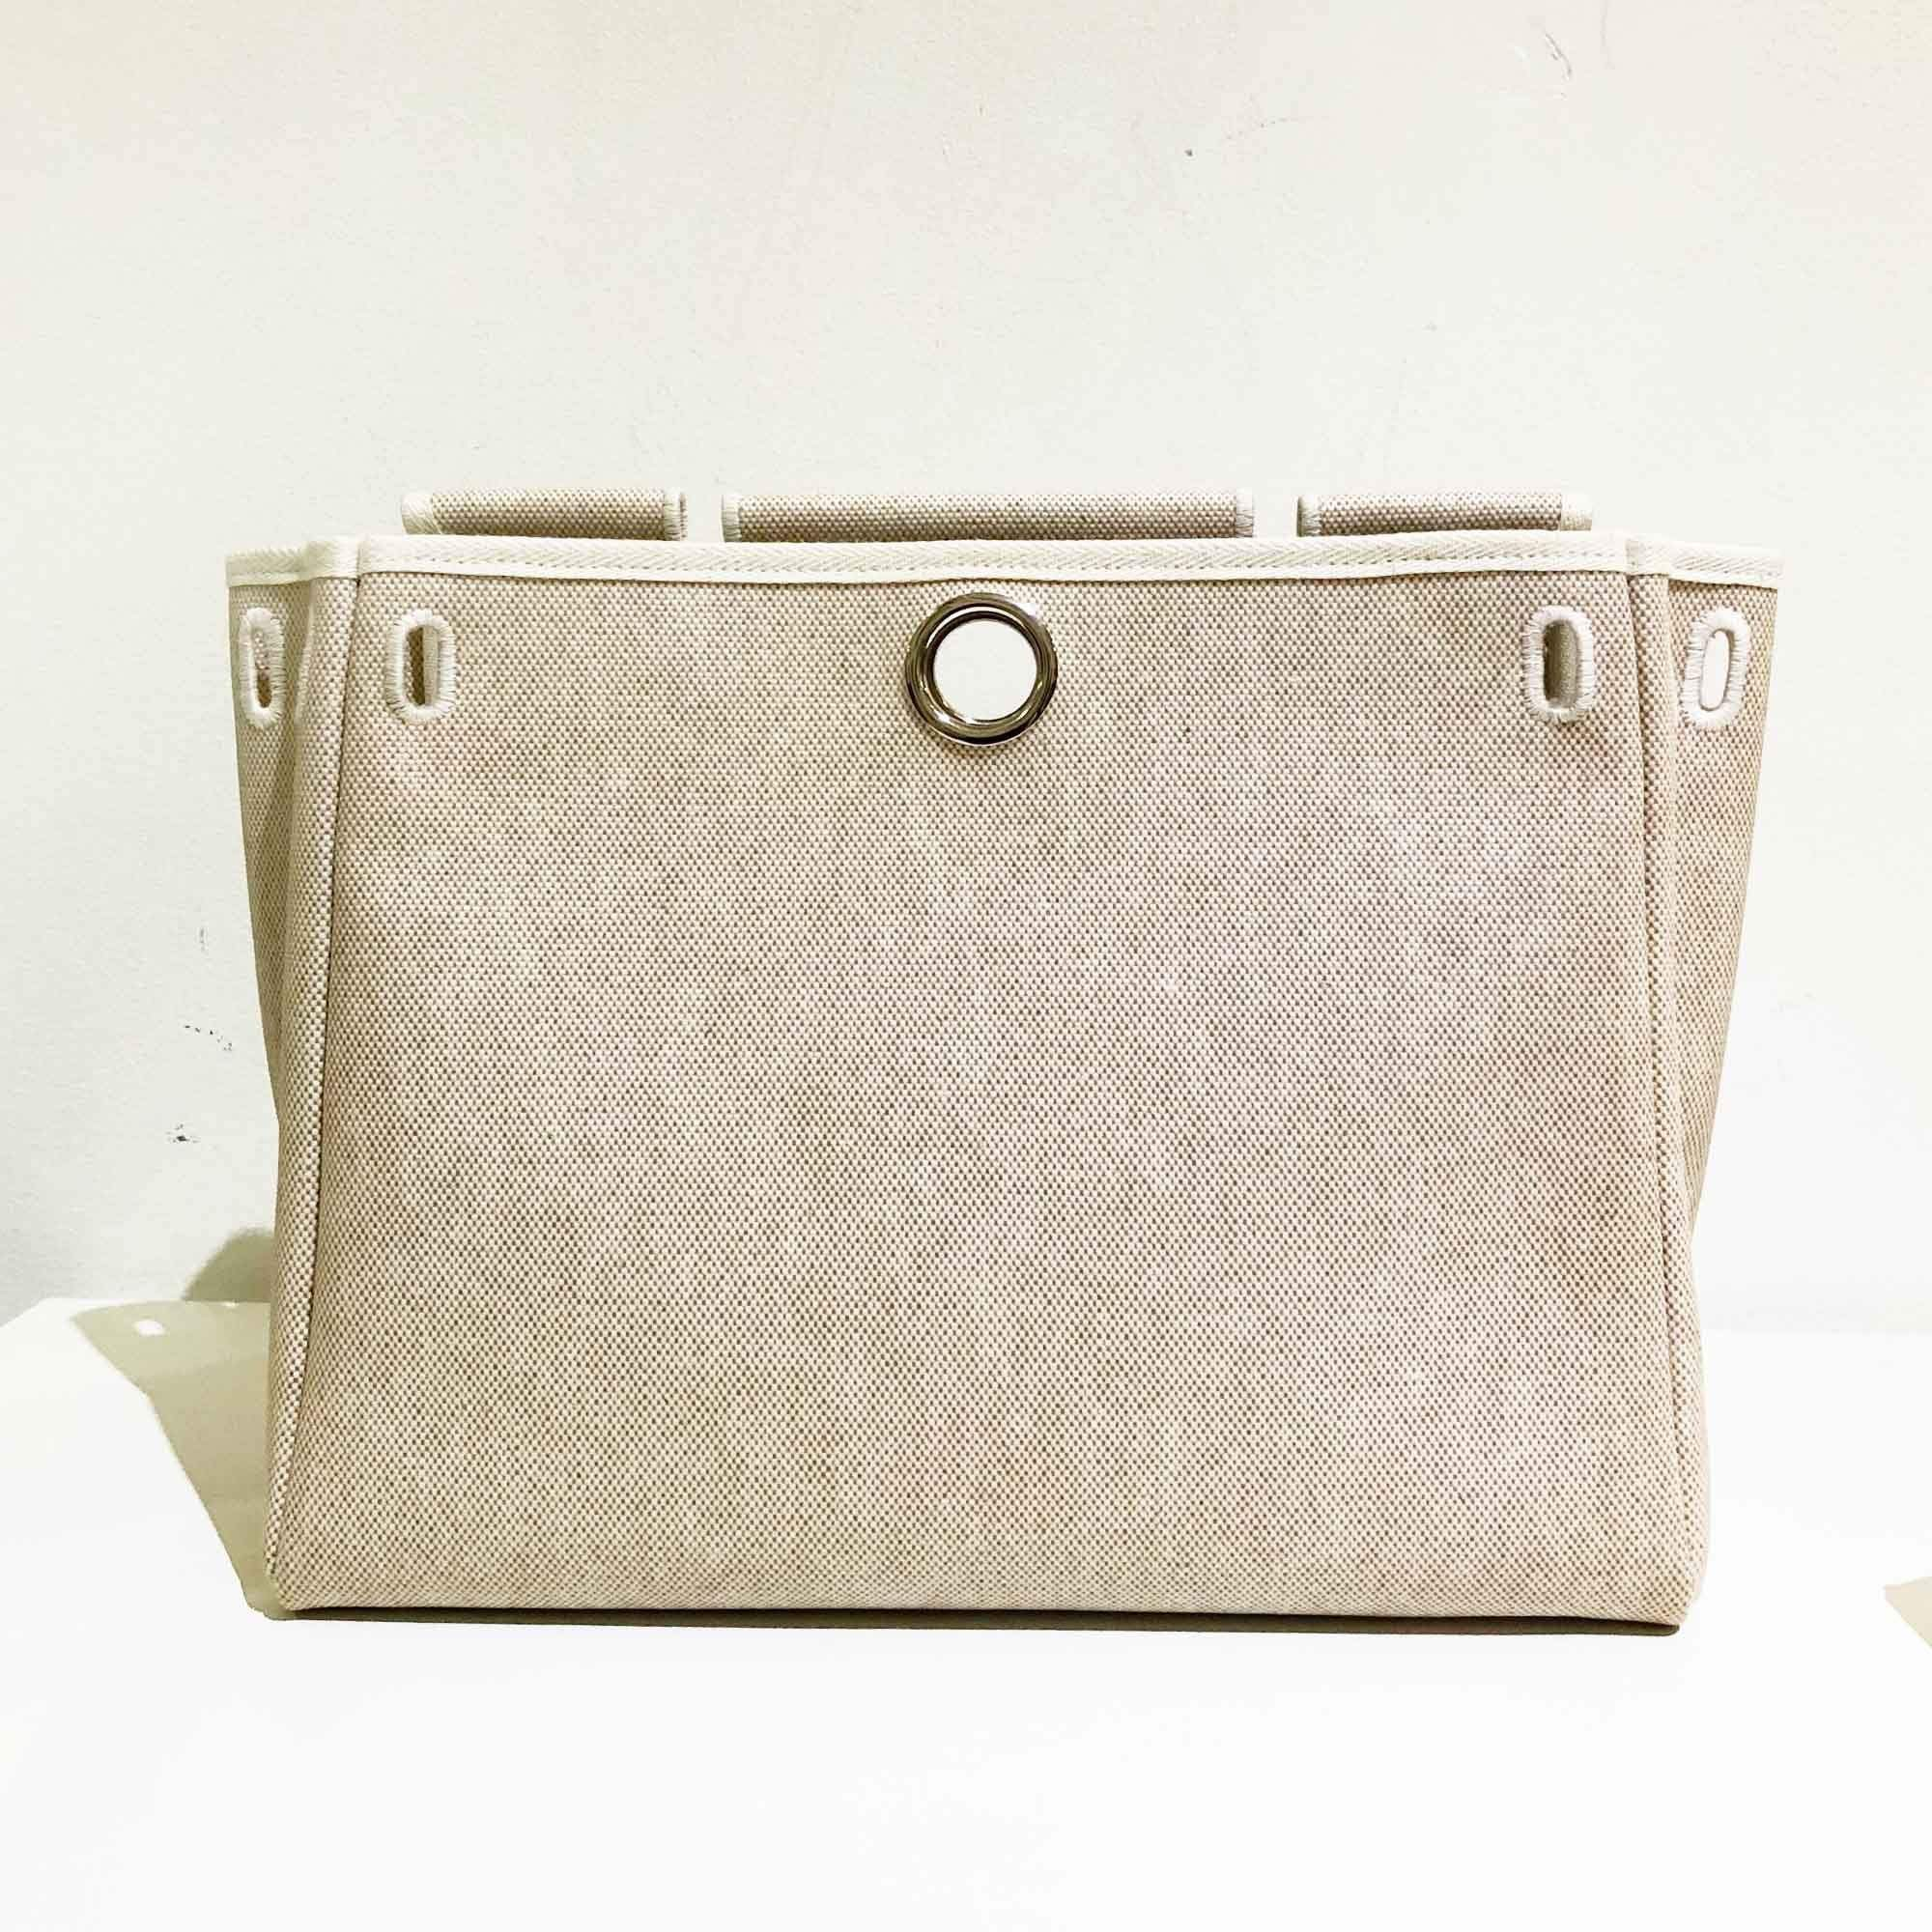 Hermes 32 cm Beige Canvas Cover